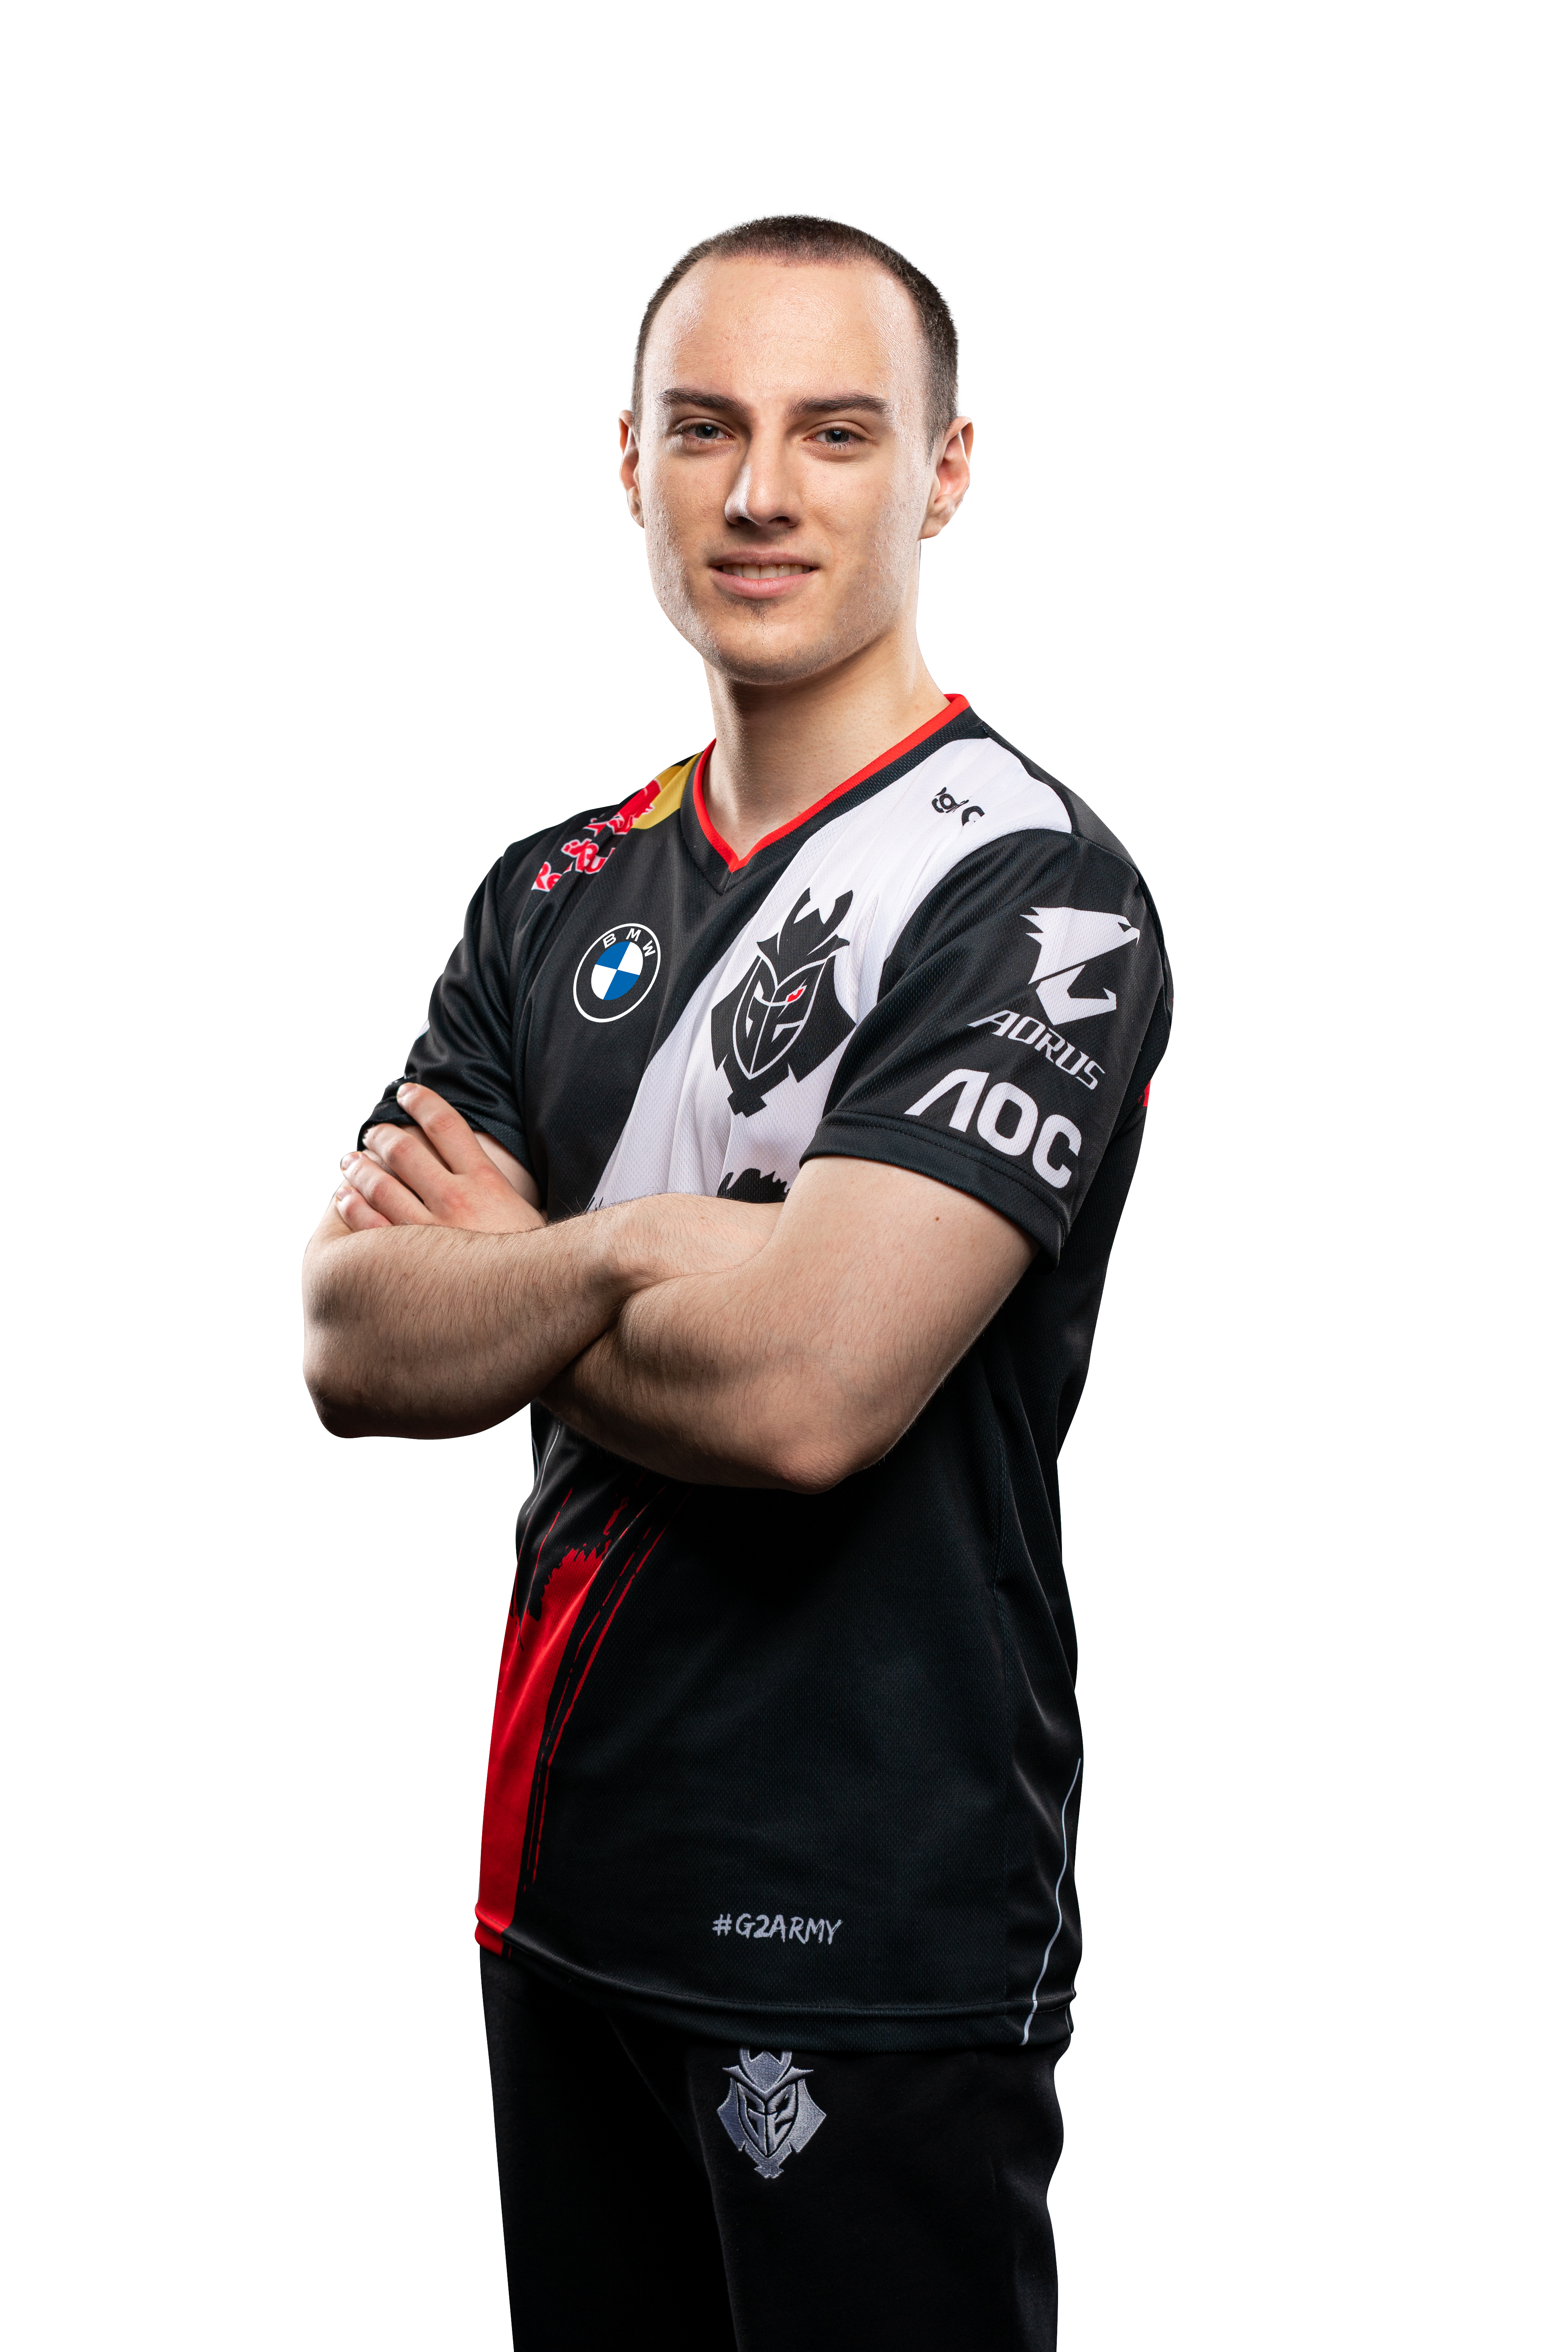 G2 Esports star Perkz poses with his arms crossed